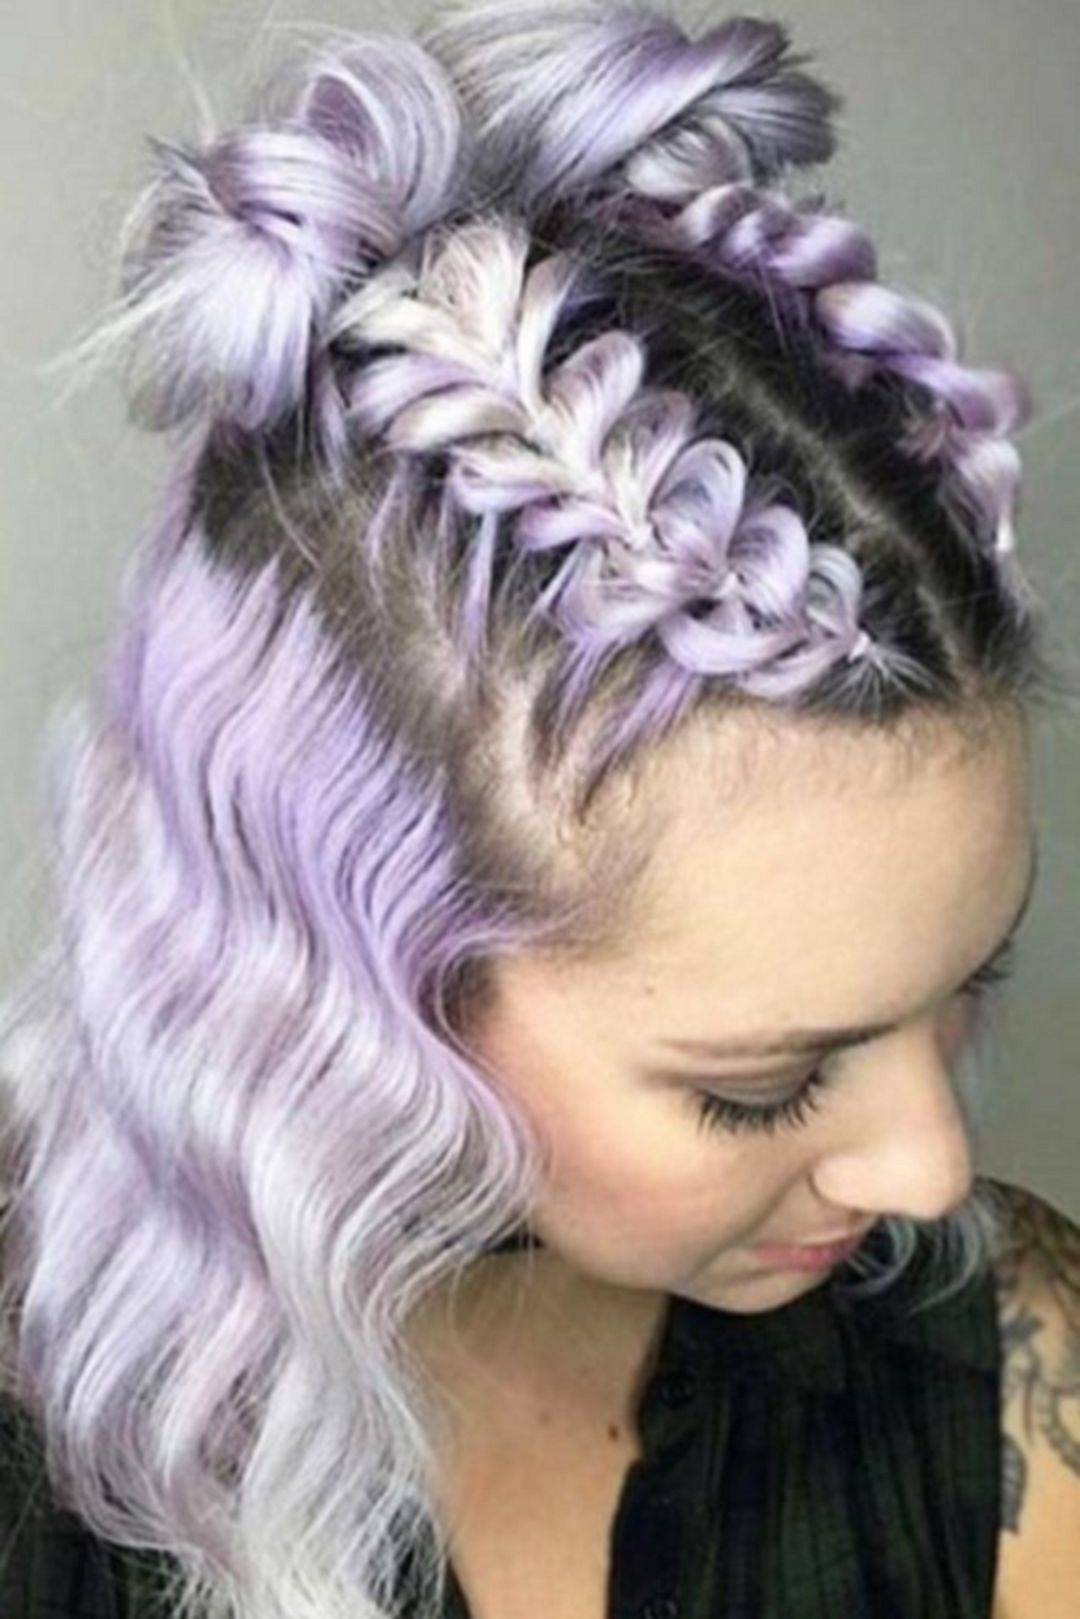 Cute Braided Hairstyles 30 Awesome Cute Braided Hairstyles Ideas For Women Look More Young